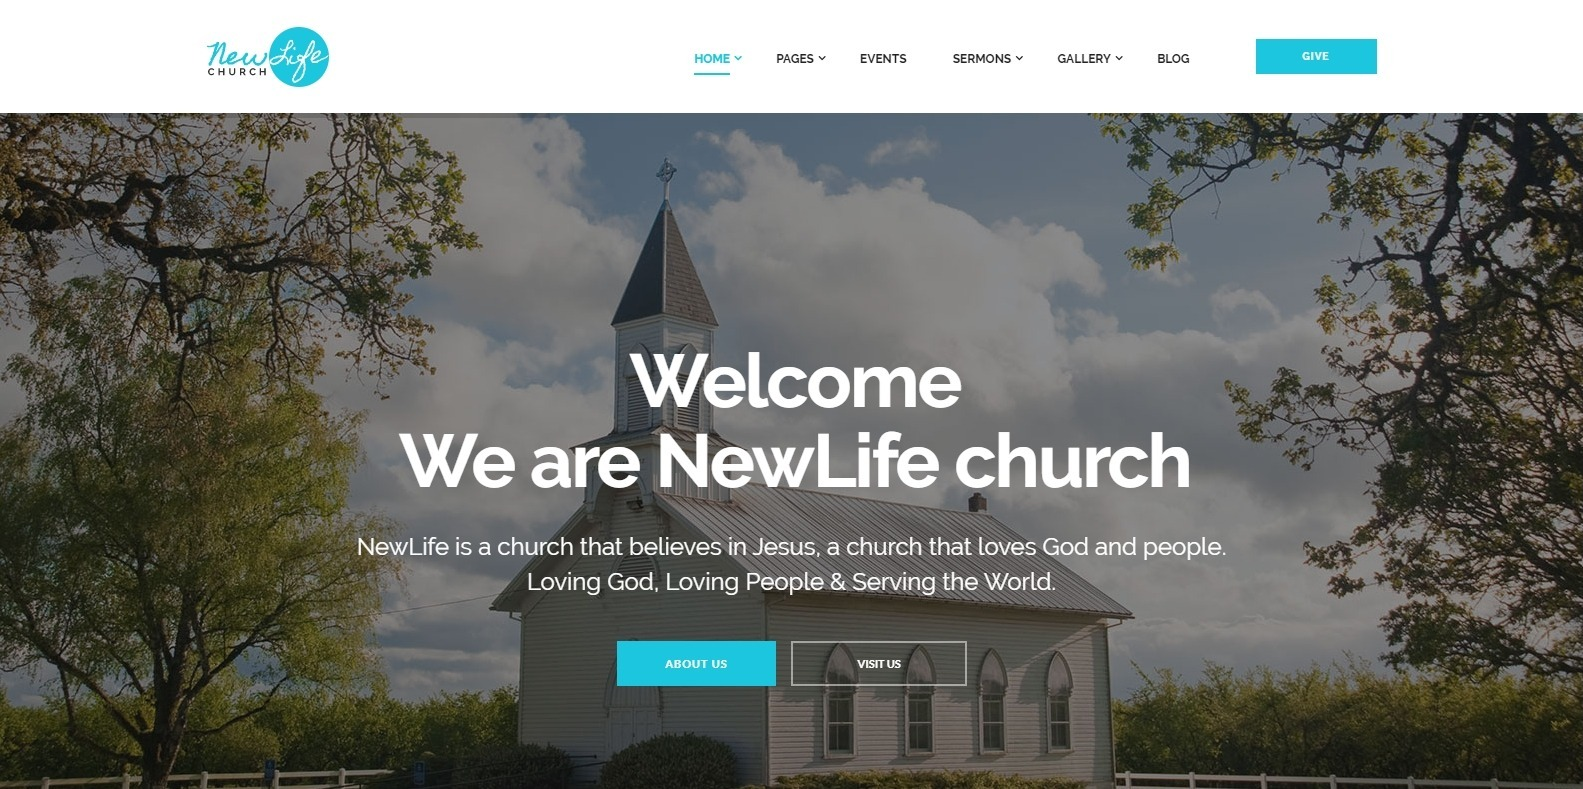 newlife-church-website-template